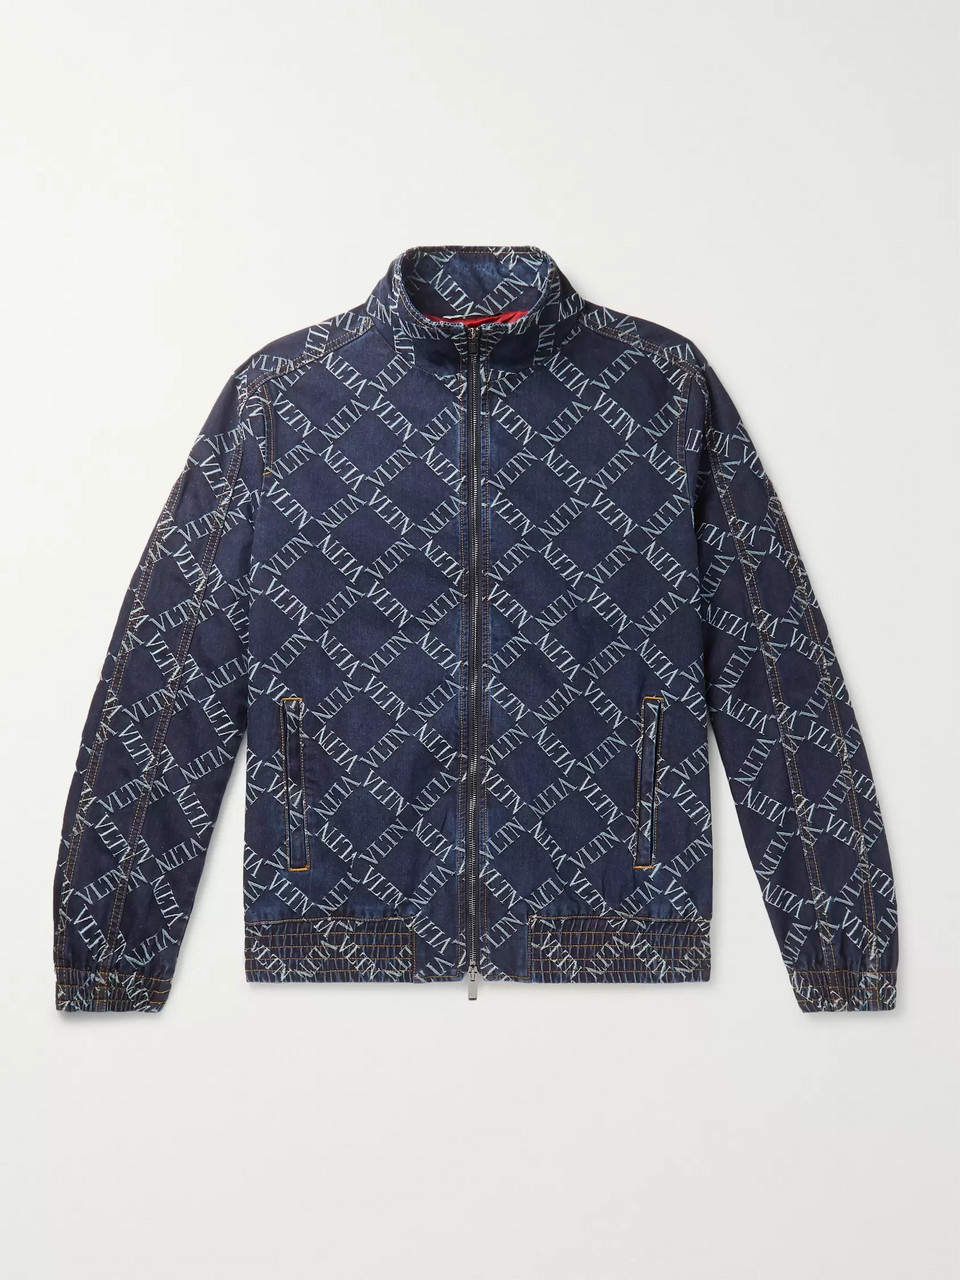 Valentino Slim-Fit Logo-Jacquard Denim Bomber Jacket